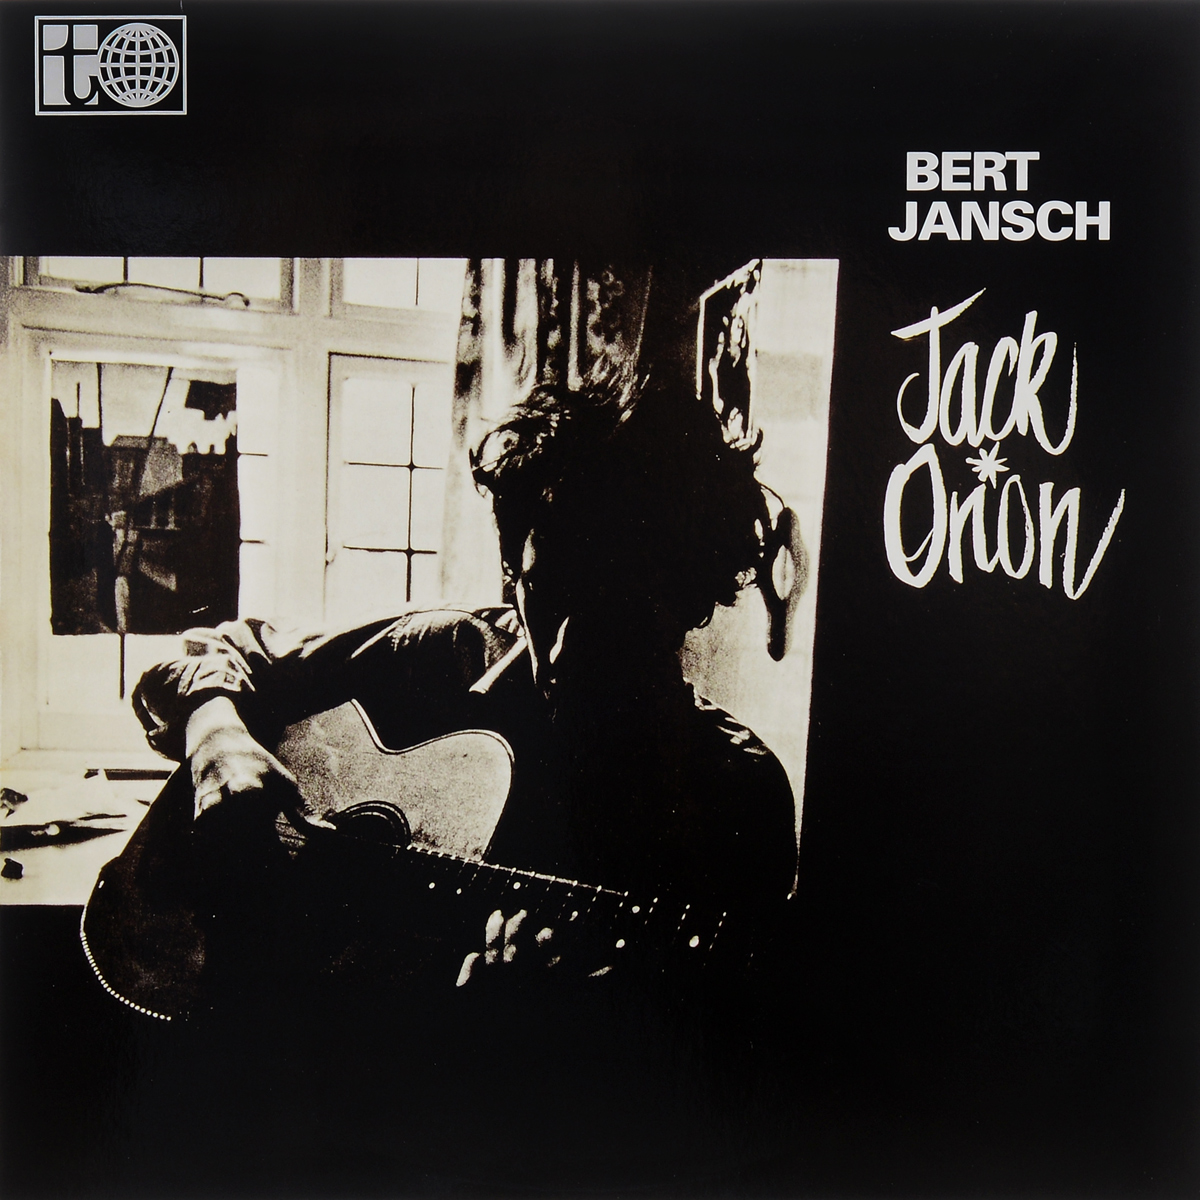 Берт Дженч Bert Jansch. Jack Orion (LP) берт дженч bert jansch it don t bother me